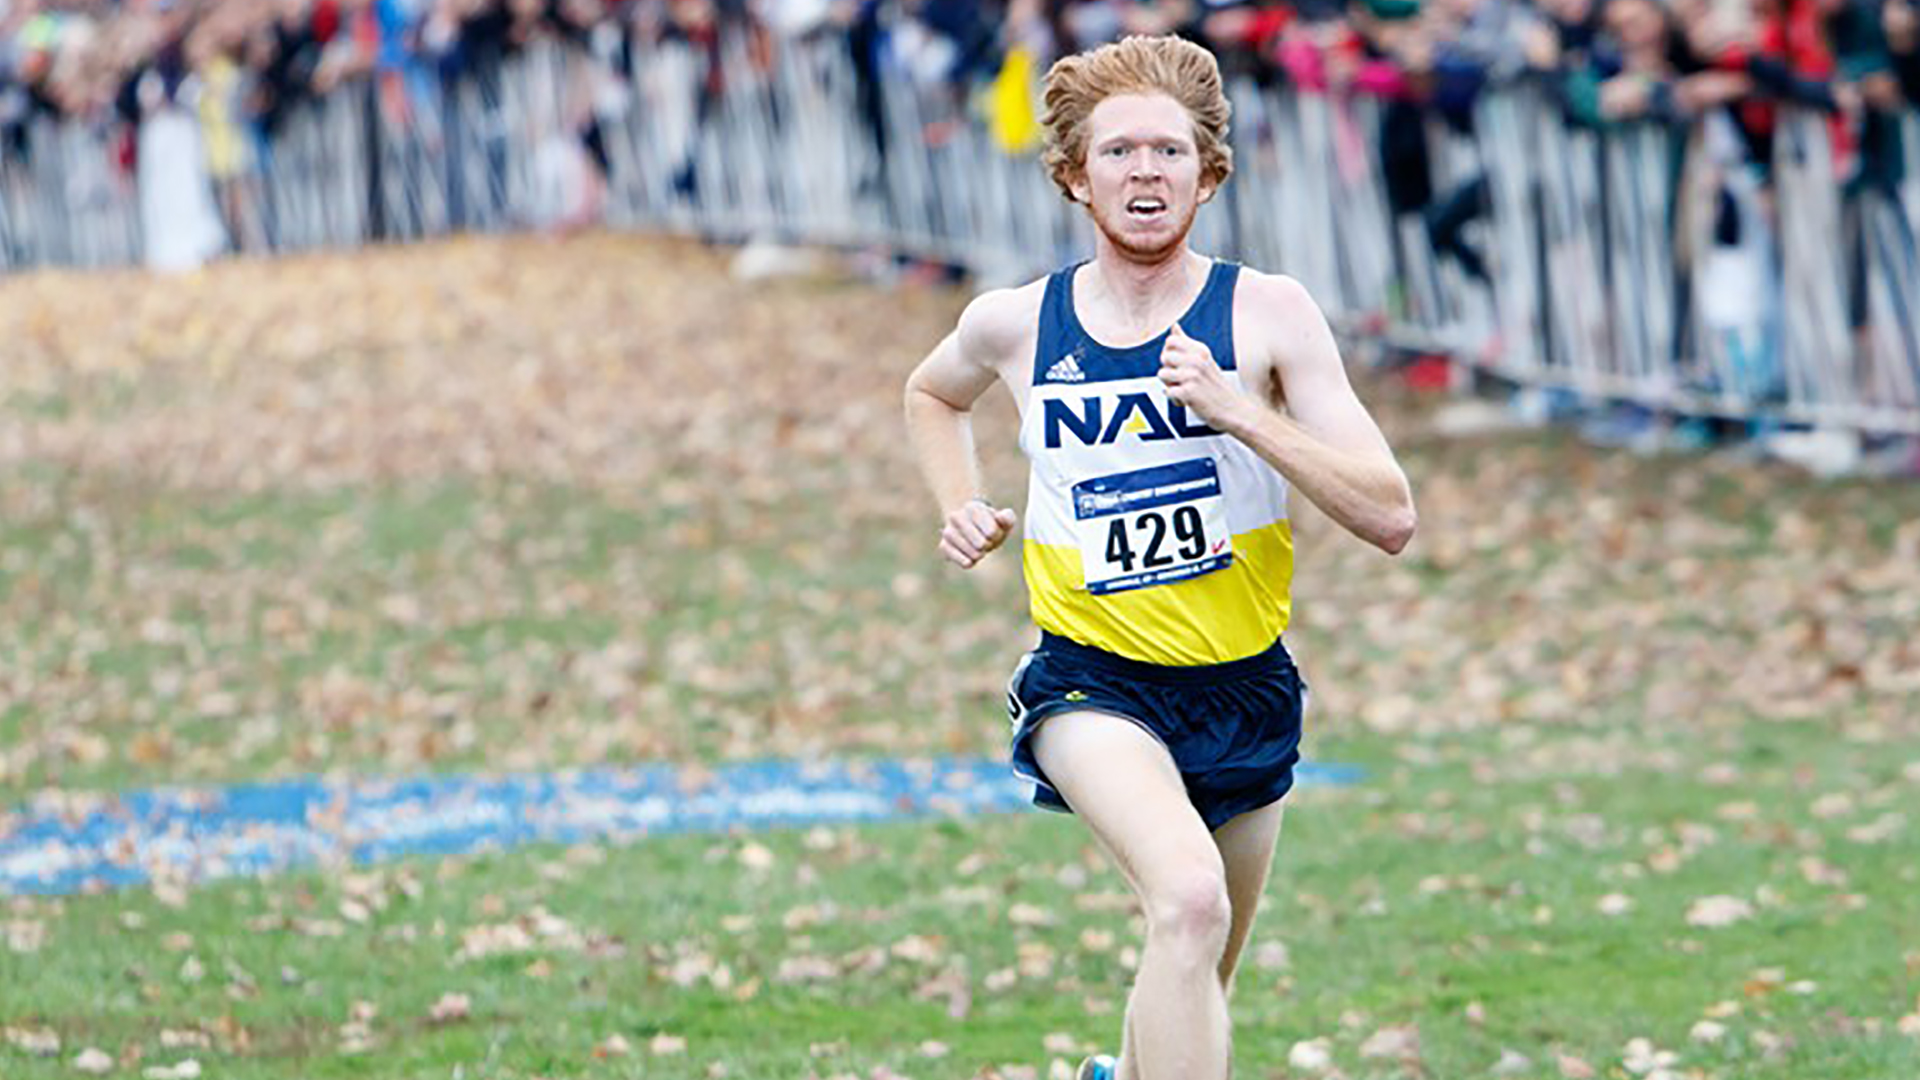 ... Trouard Runs Second-Fastest Time in NCAA in 5000m and Baxter Adds Third-Best Mark in 10,000m as NAU Competes at Payton Jordan Invitational